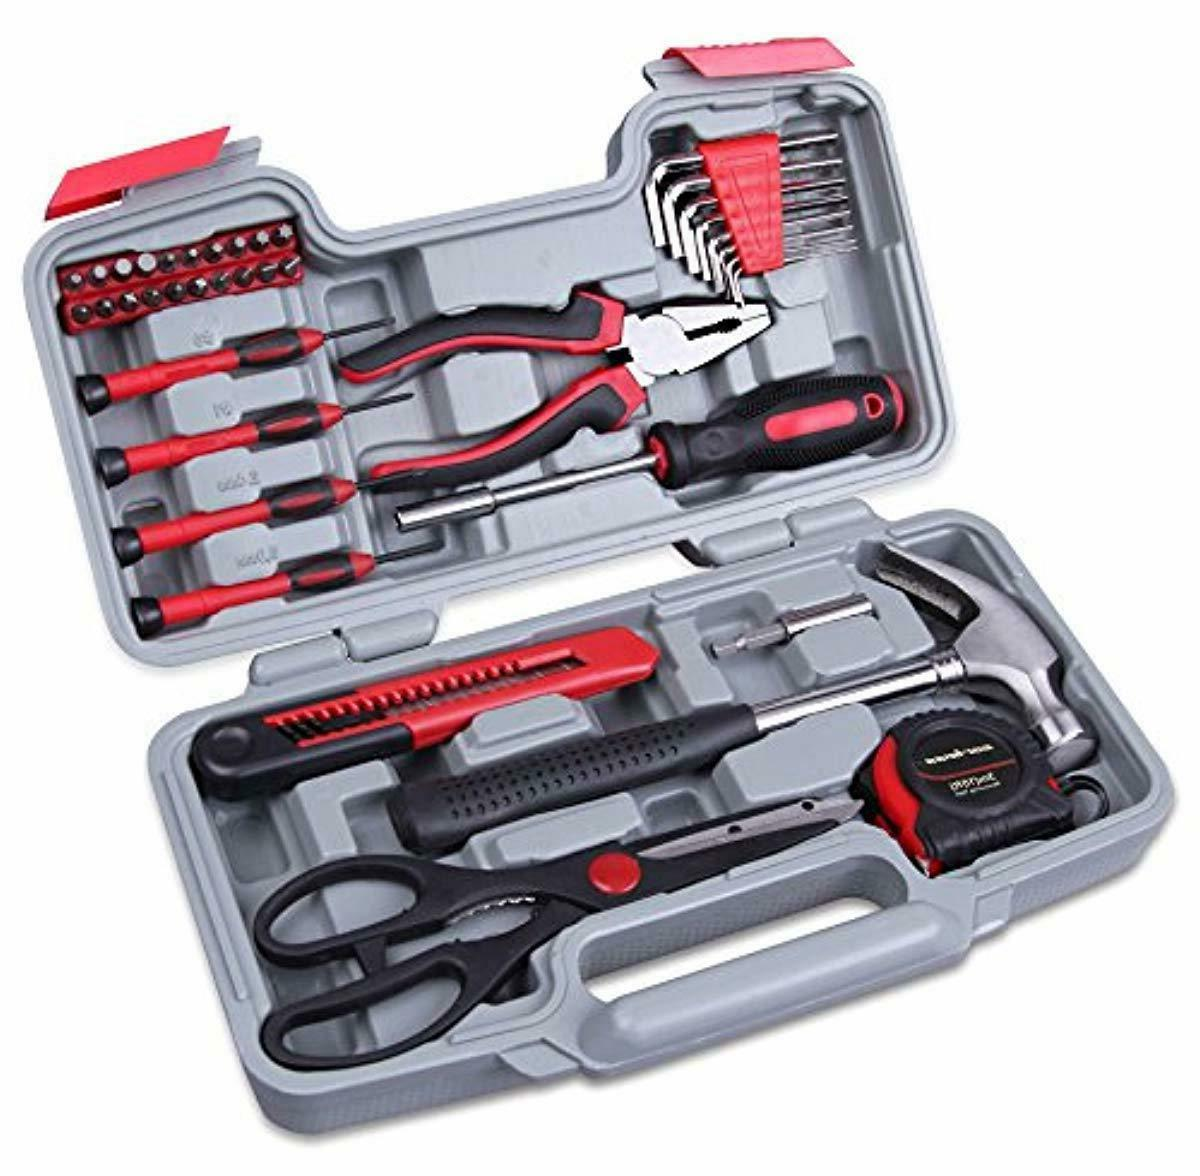 red 39 piece cutting plier tool set